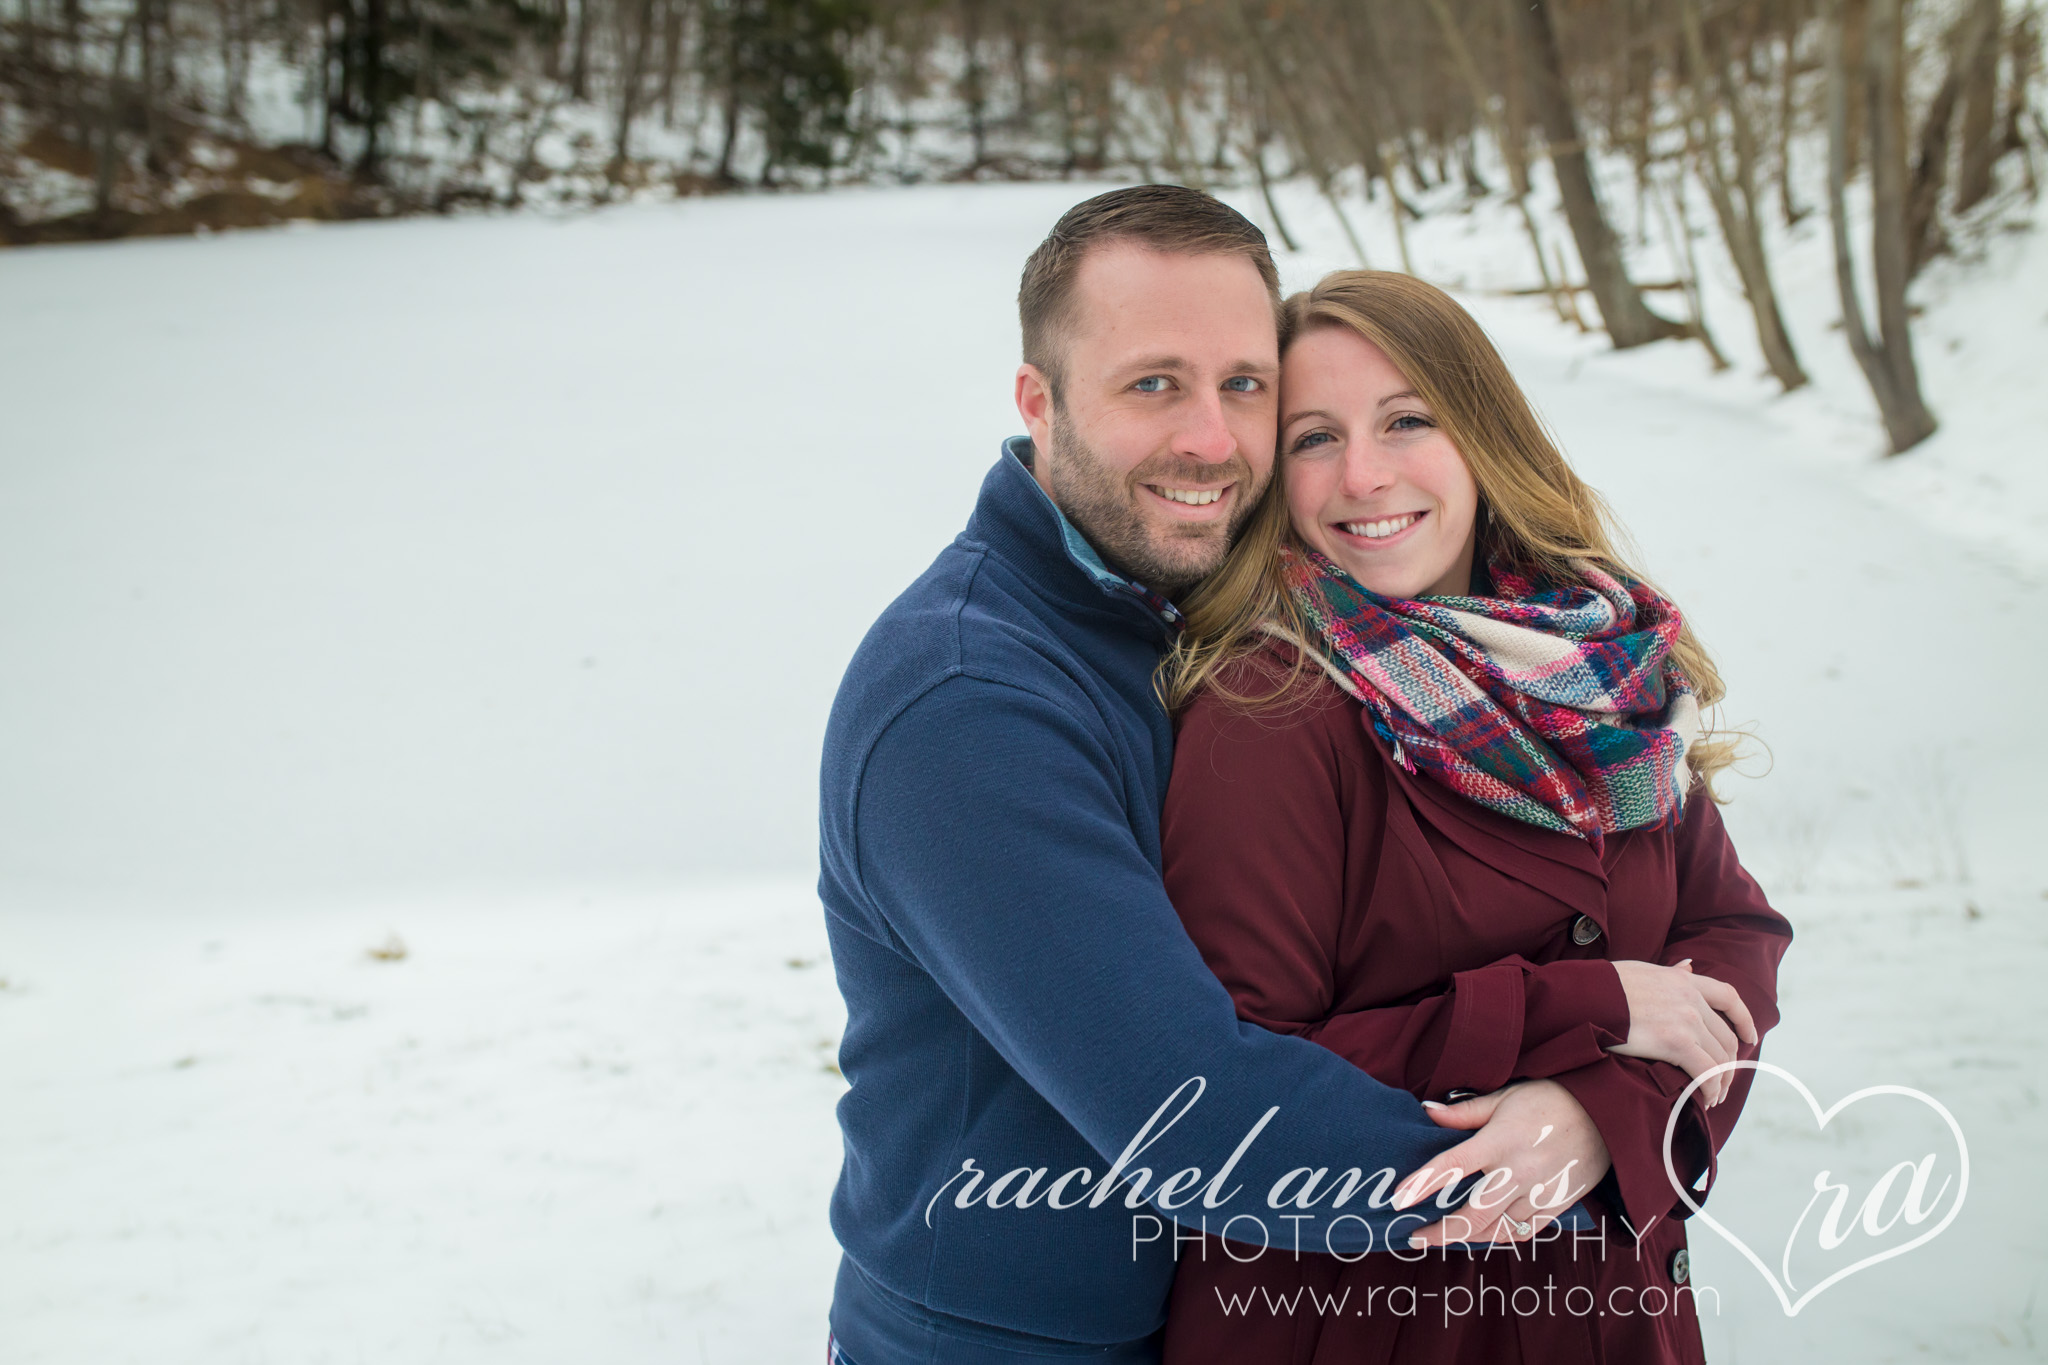 008-JKM-DUBOIS-PA-ENGAGEMENT-PHOTOGRAPHY.jpg